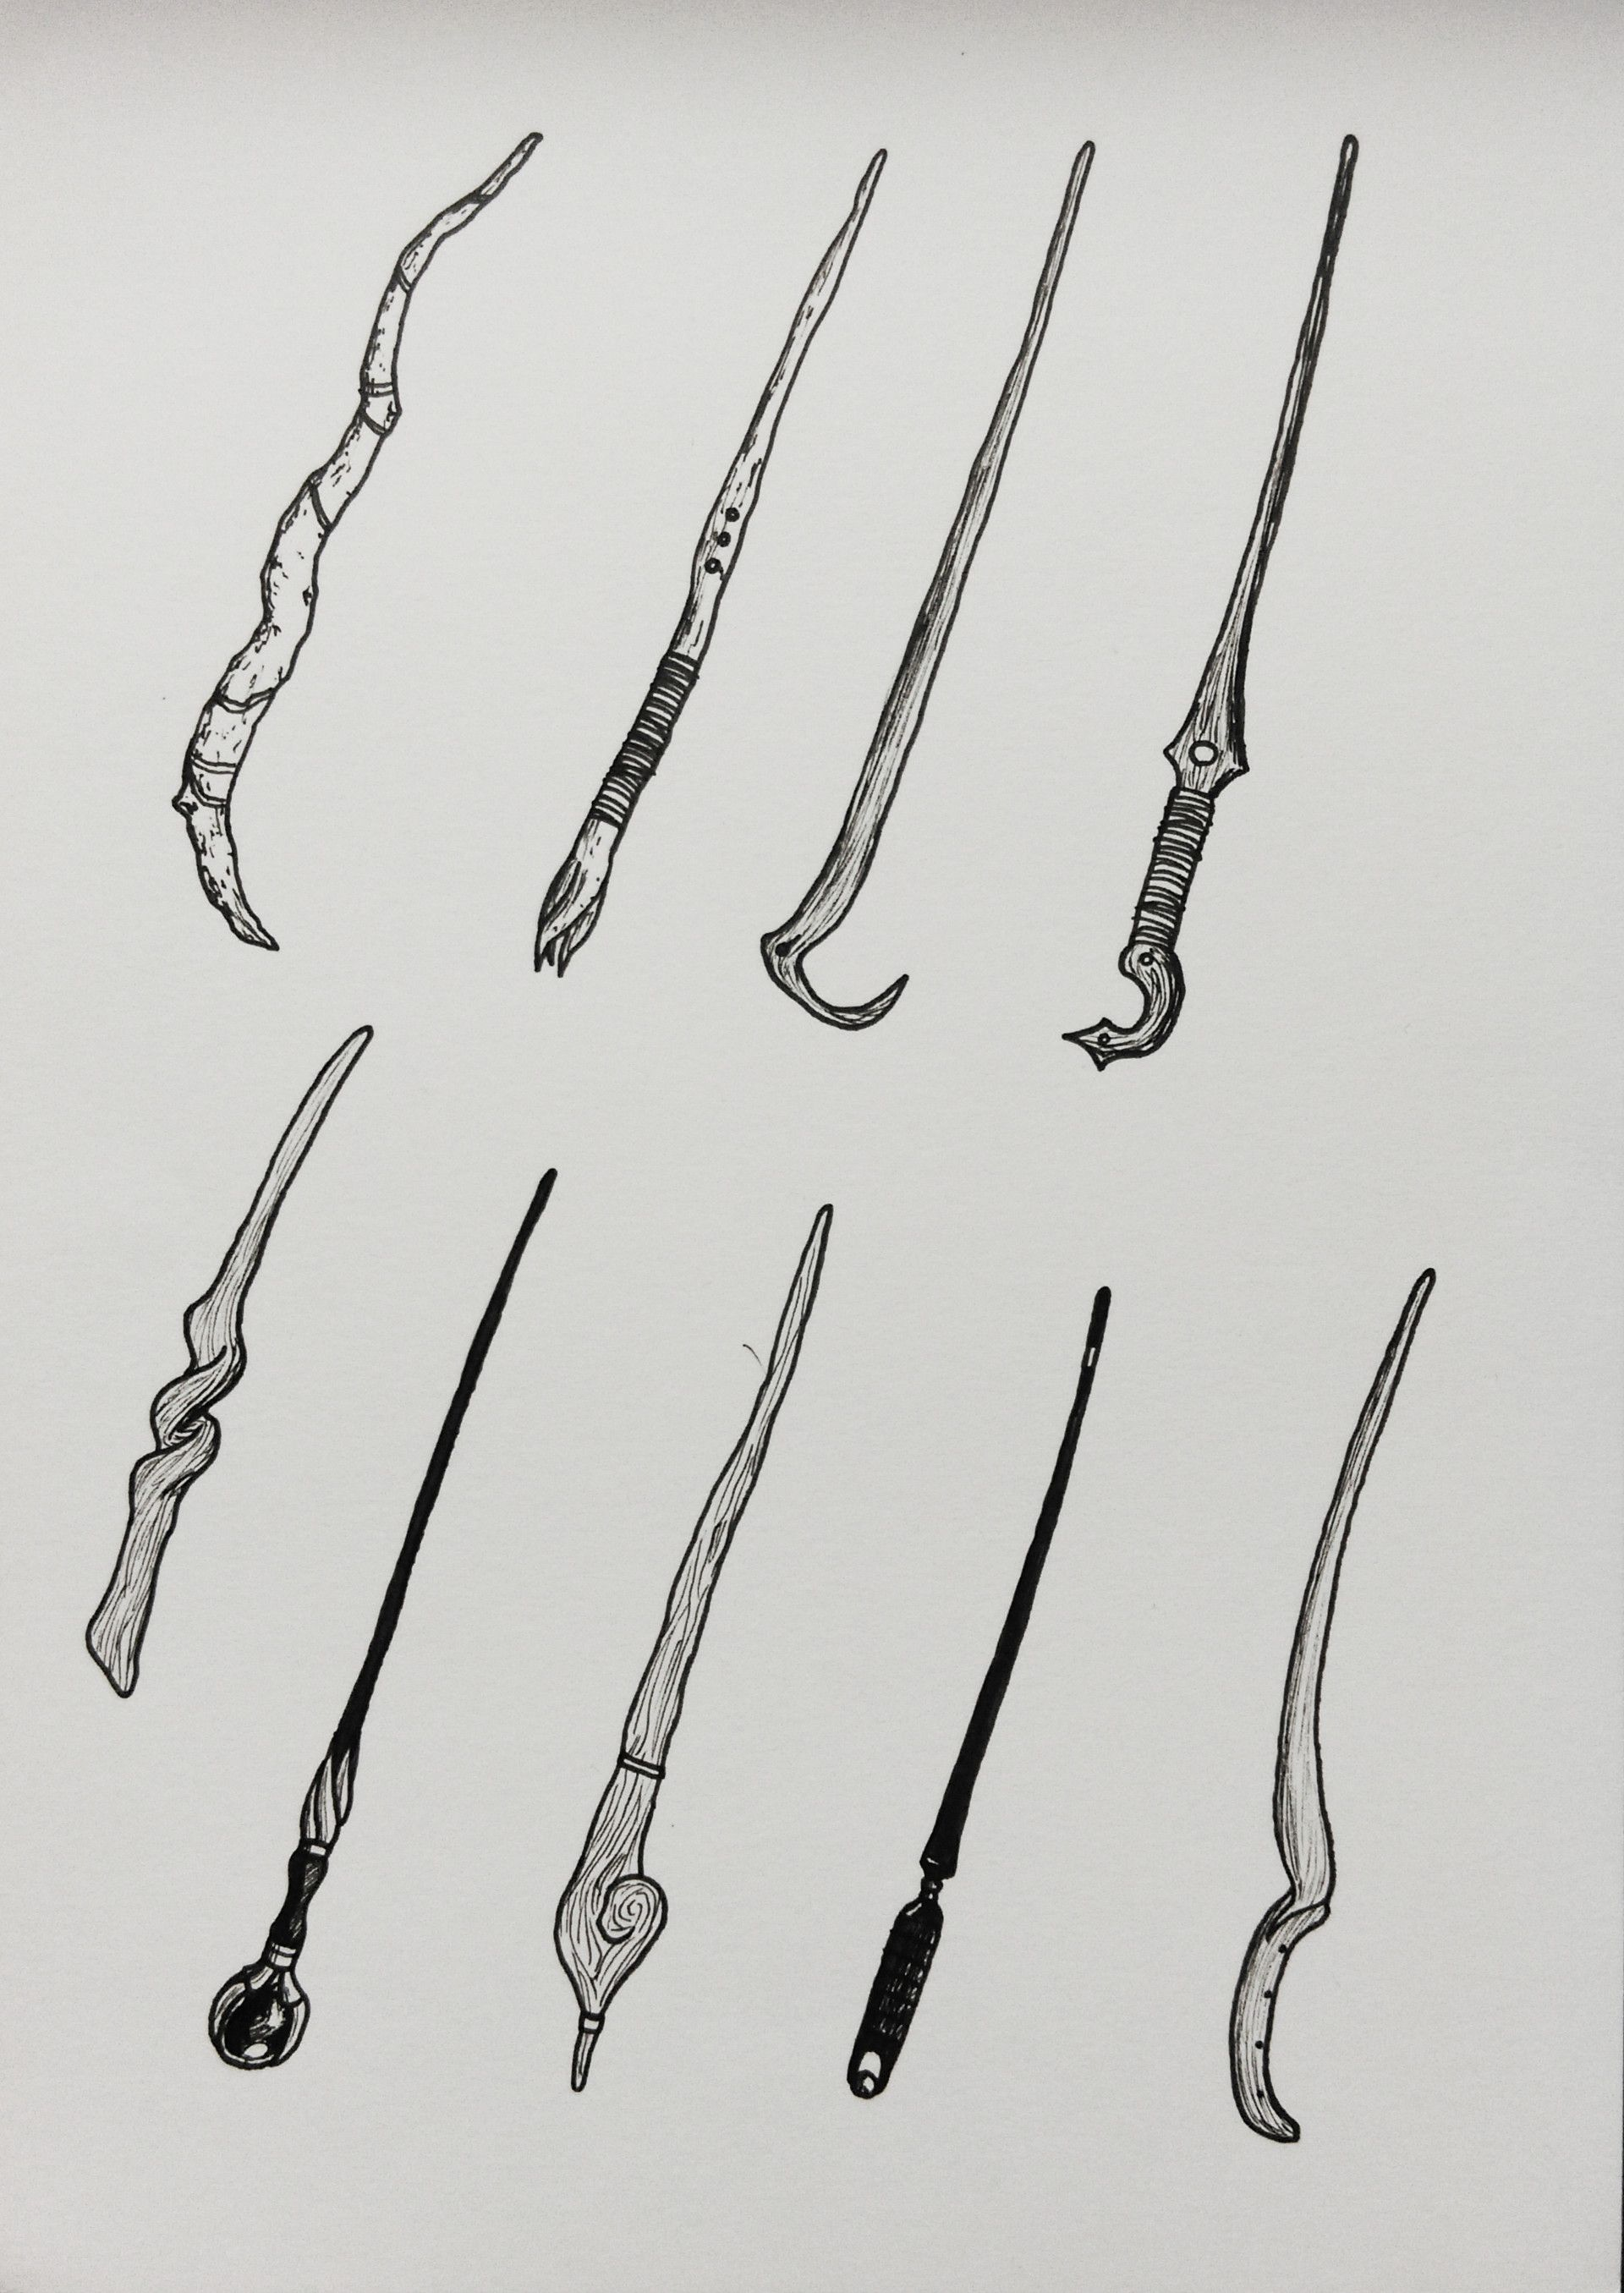 How To Draw A Wand : Concepts, Ideas, Harry, Potter, Wand,, Wands,